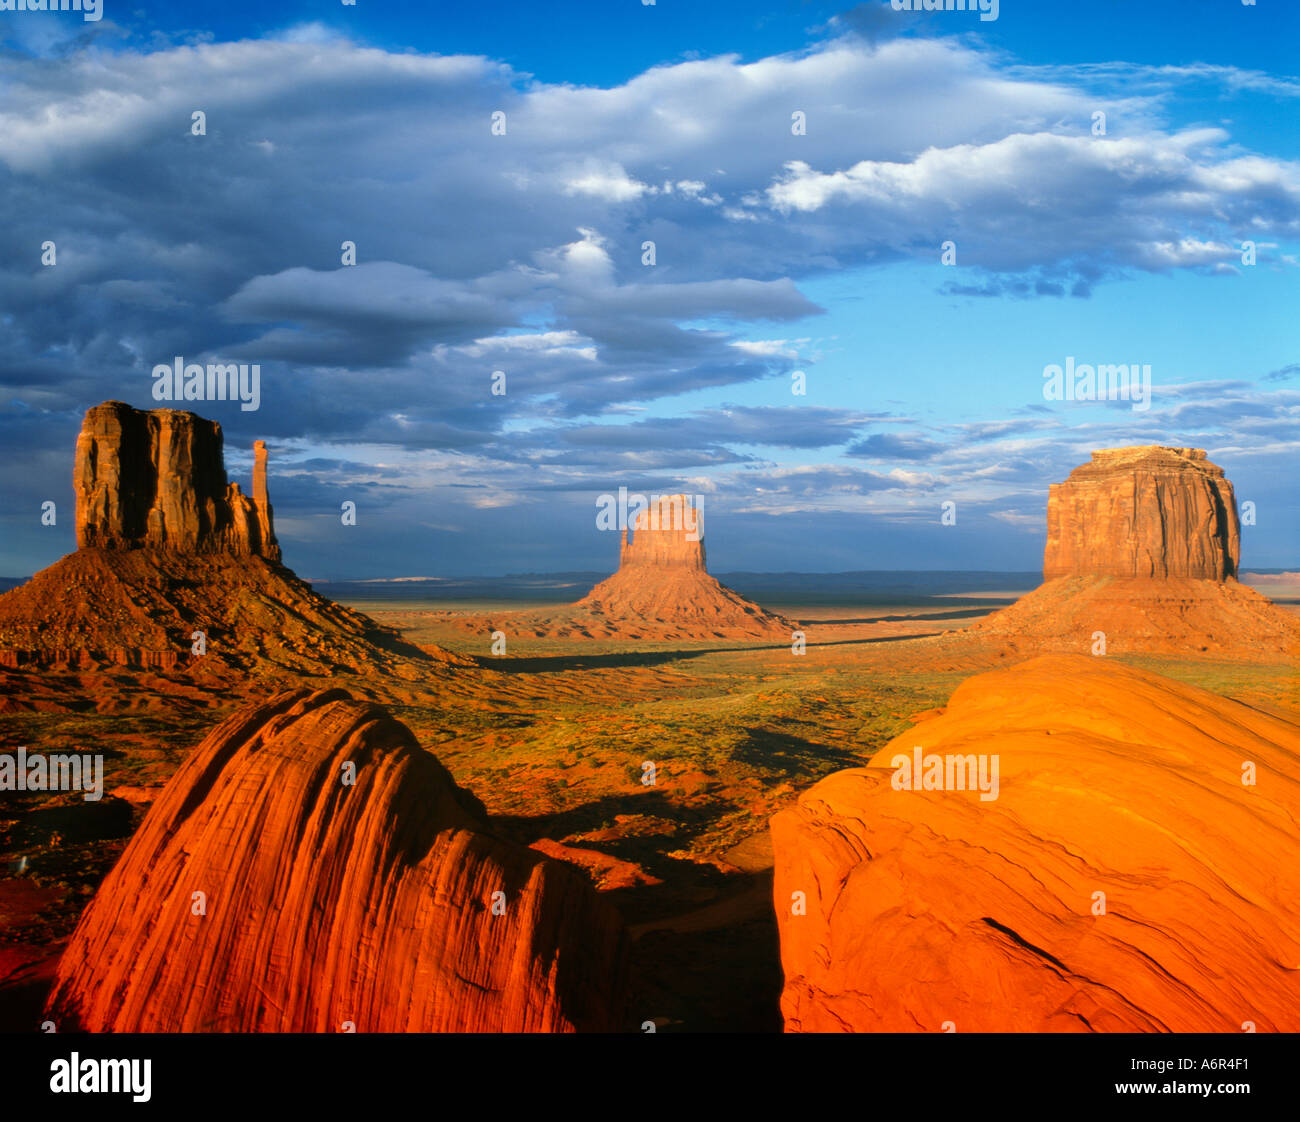 Mitten Buttes Monument Valley Arizona USA Stockbild